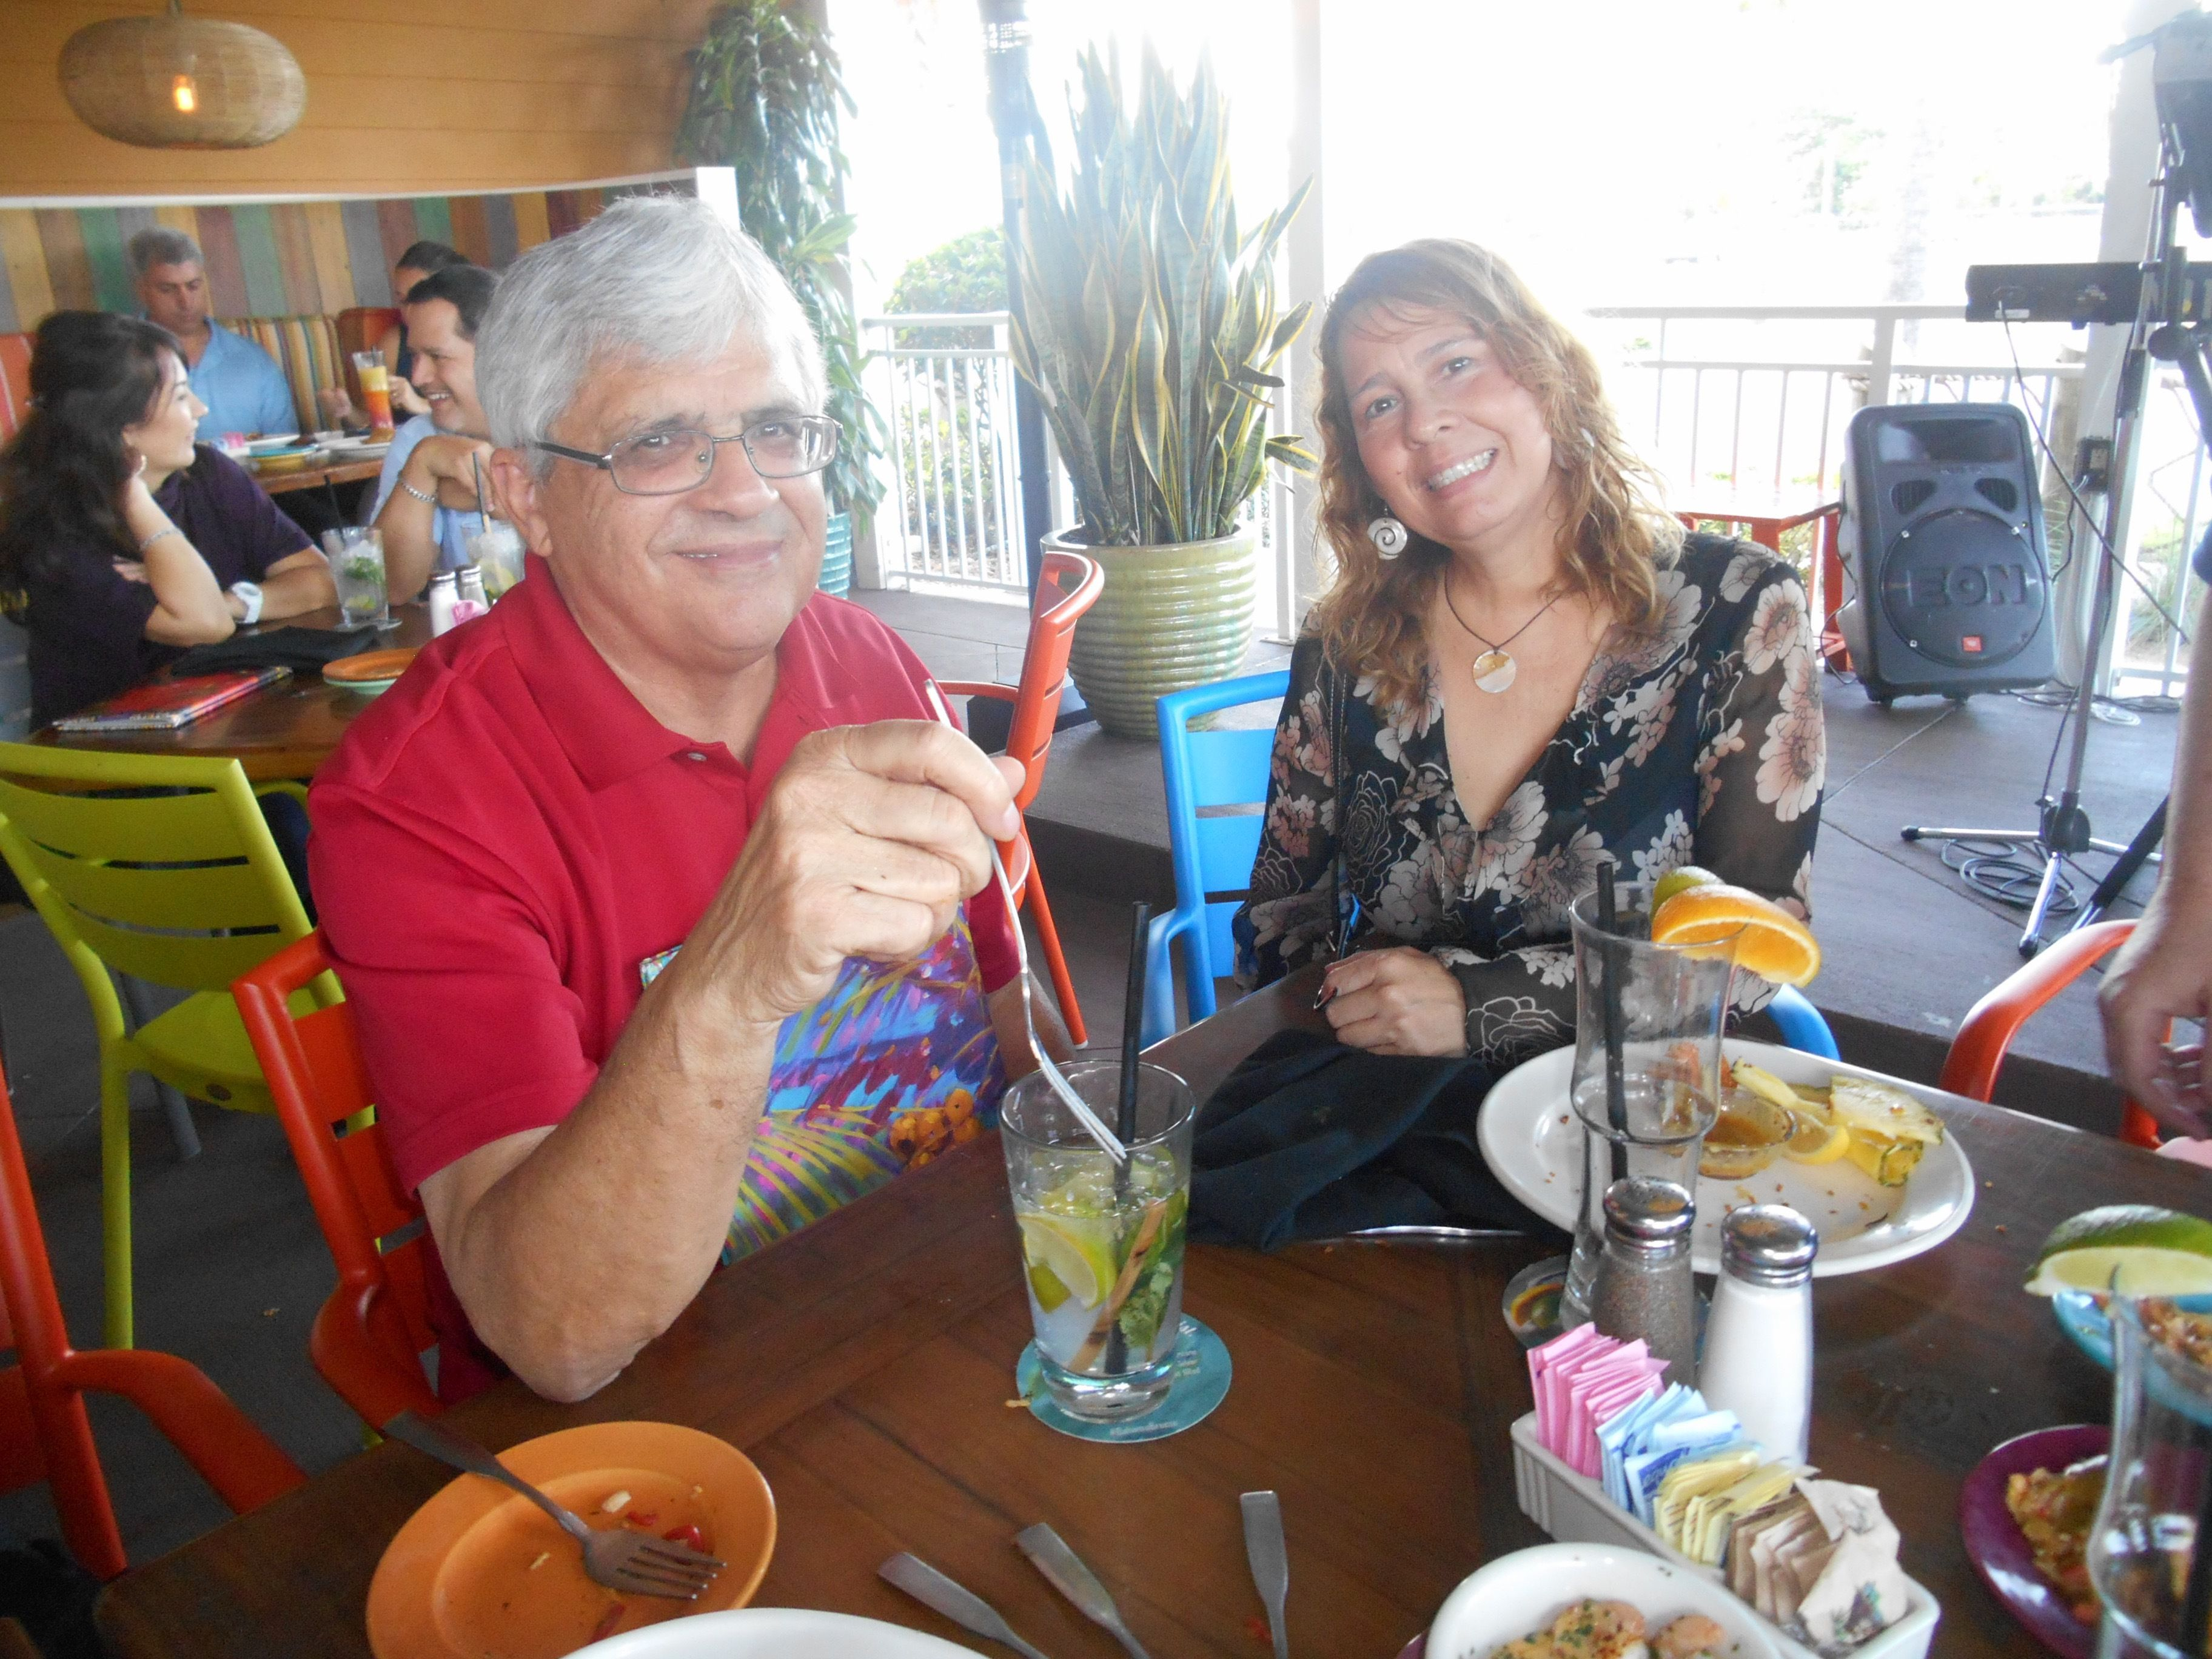 bahama hispanic singles How to choose a caribbean island featured article  big beach resorts, casinos, tangible history and rich hispanic culture are the highlights best for:.